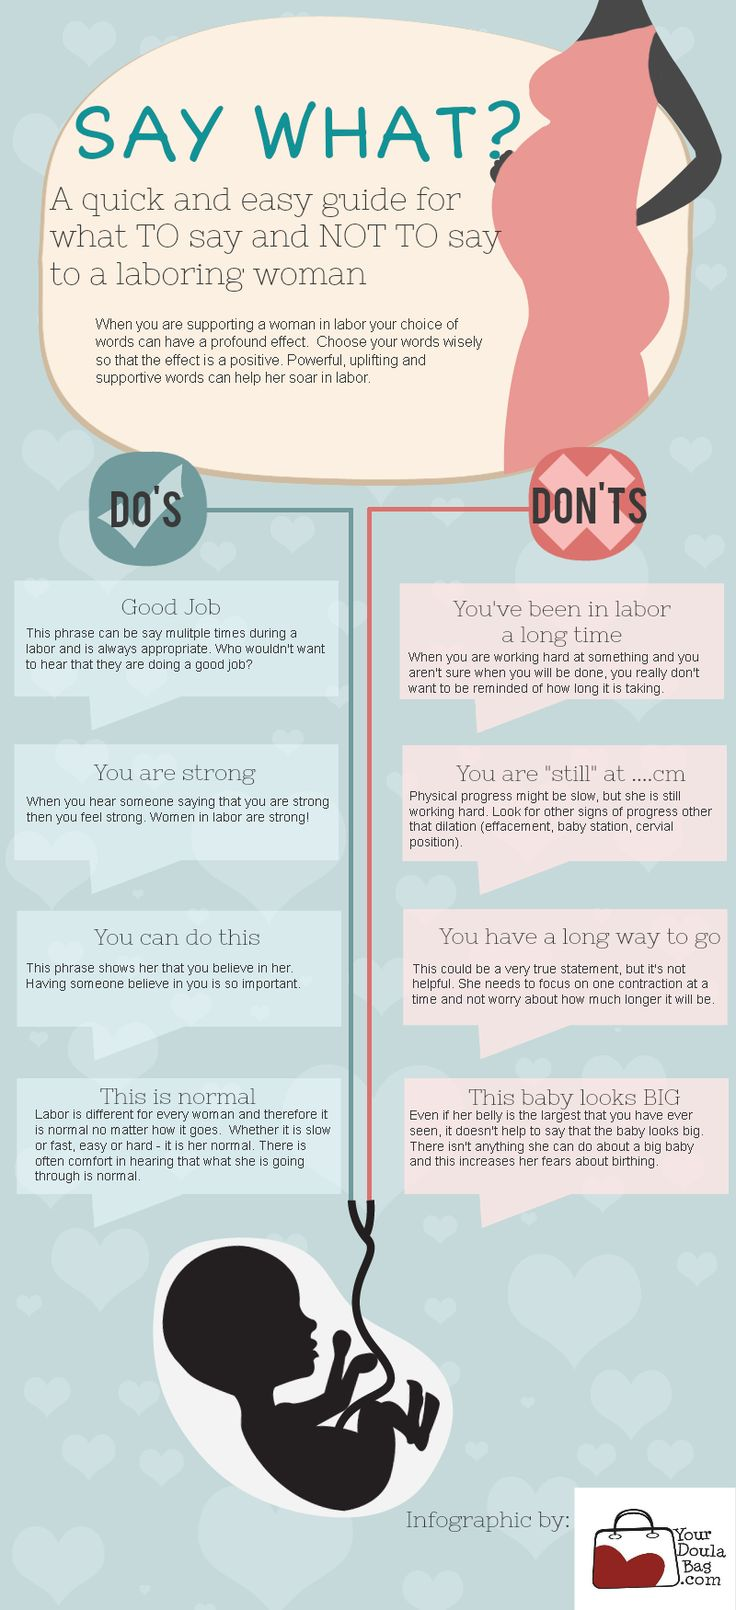 Say What? The Dos and Don'ts of What to Say in Labor. Hospital nurses at Hurley in Flint, MI could really use this poster